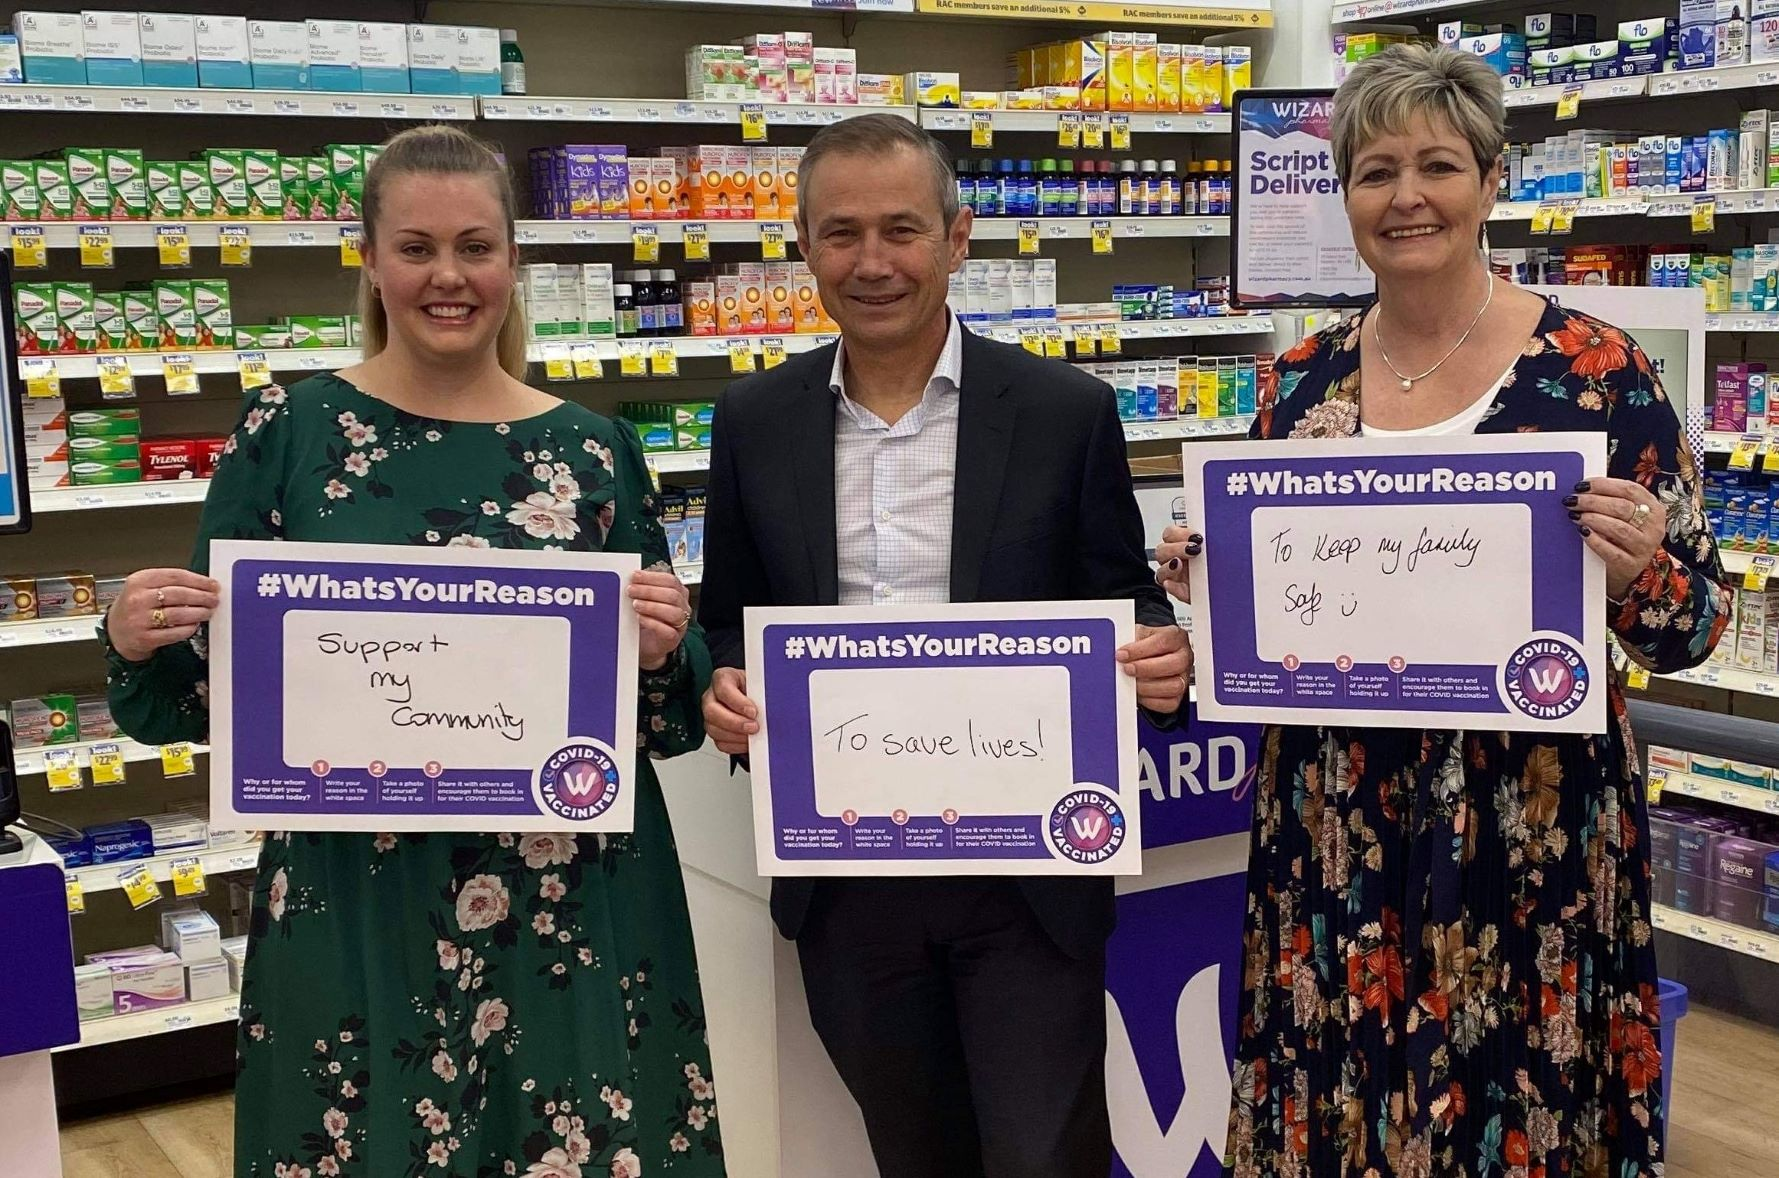 (from left to right) Wizard Kalgoorlie owner Elise Wheadon with The Hon. Roger Cook MLA and Ms Ali Kent MLA